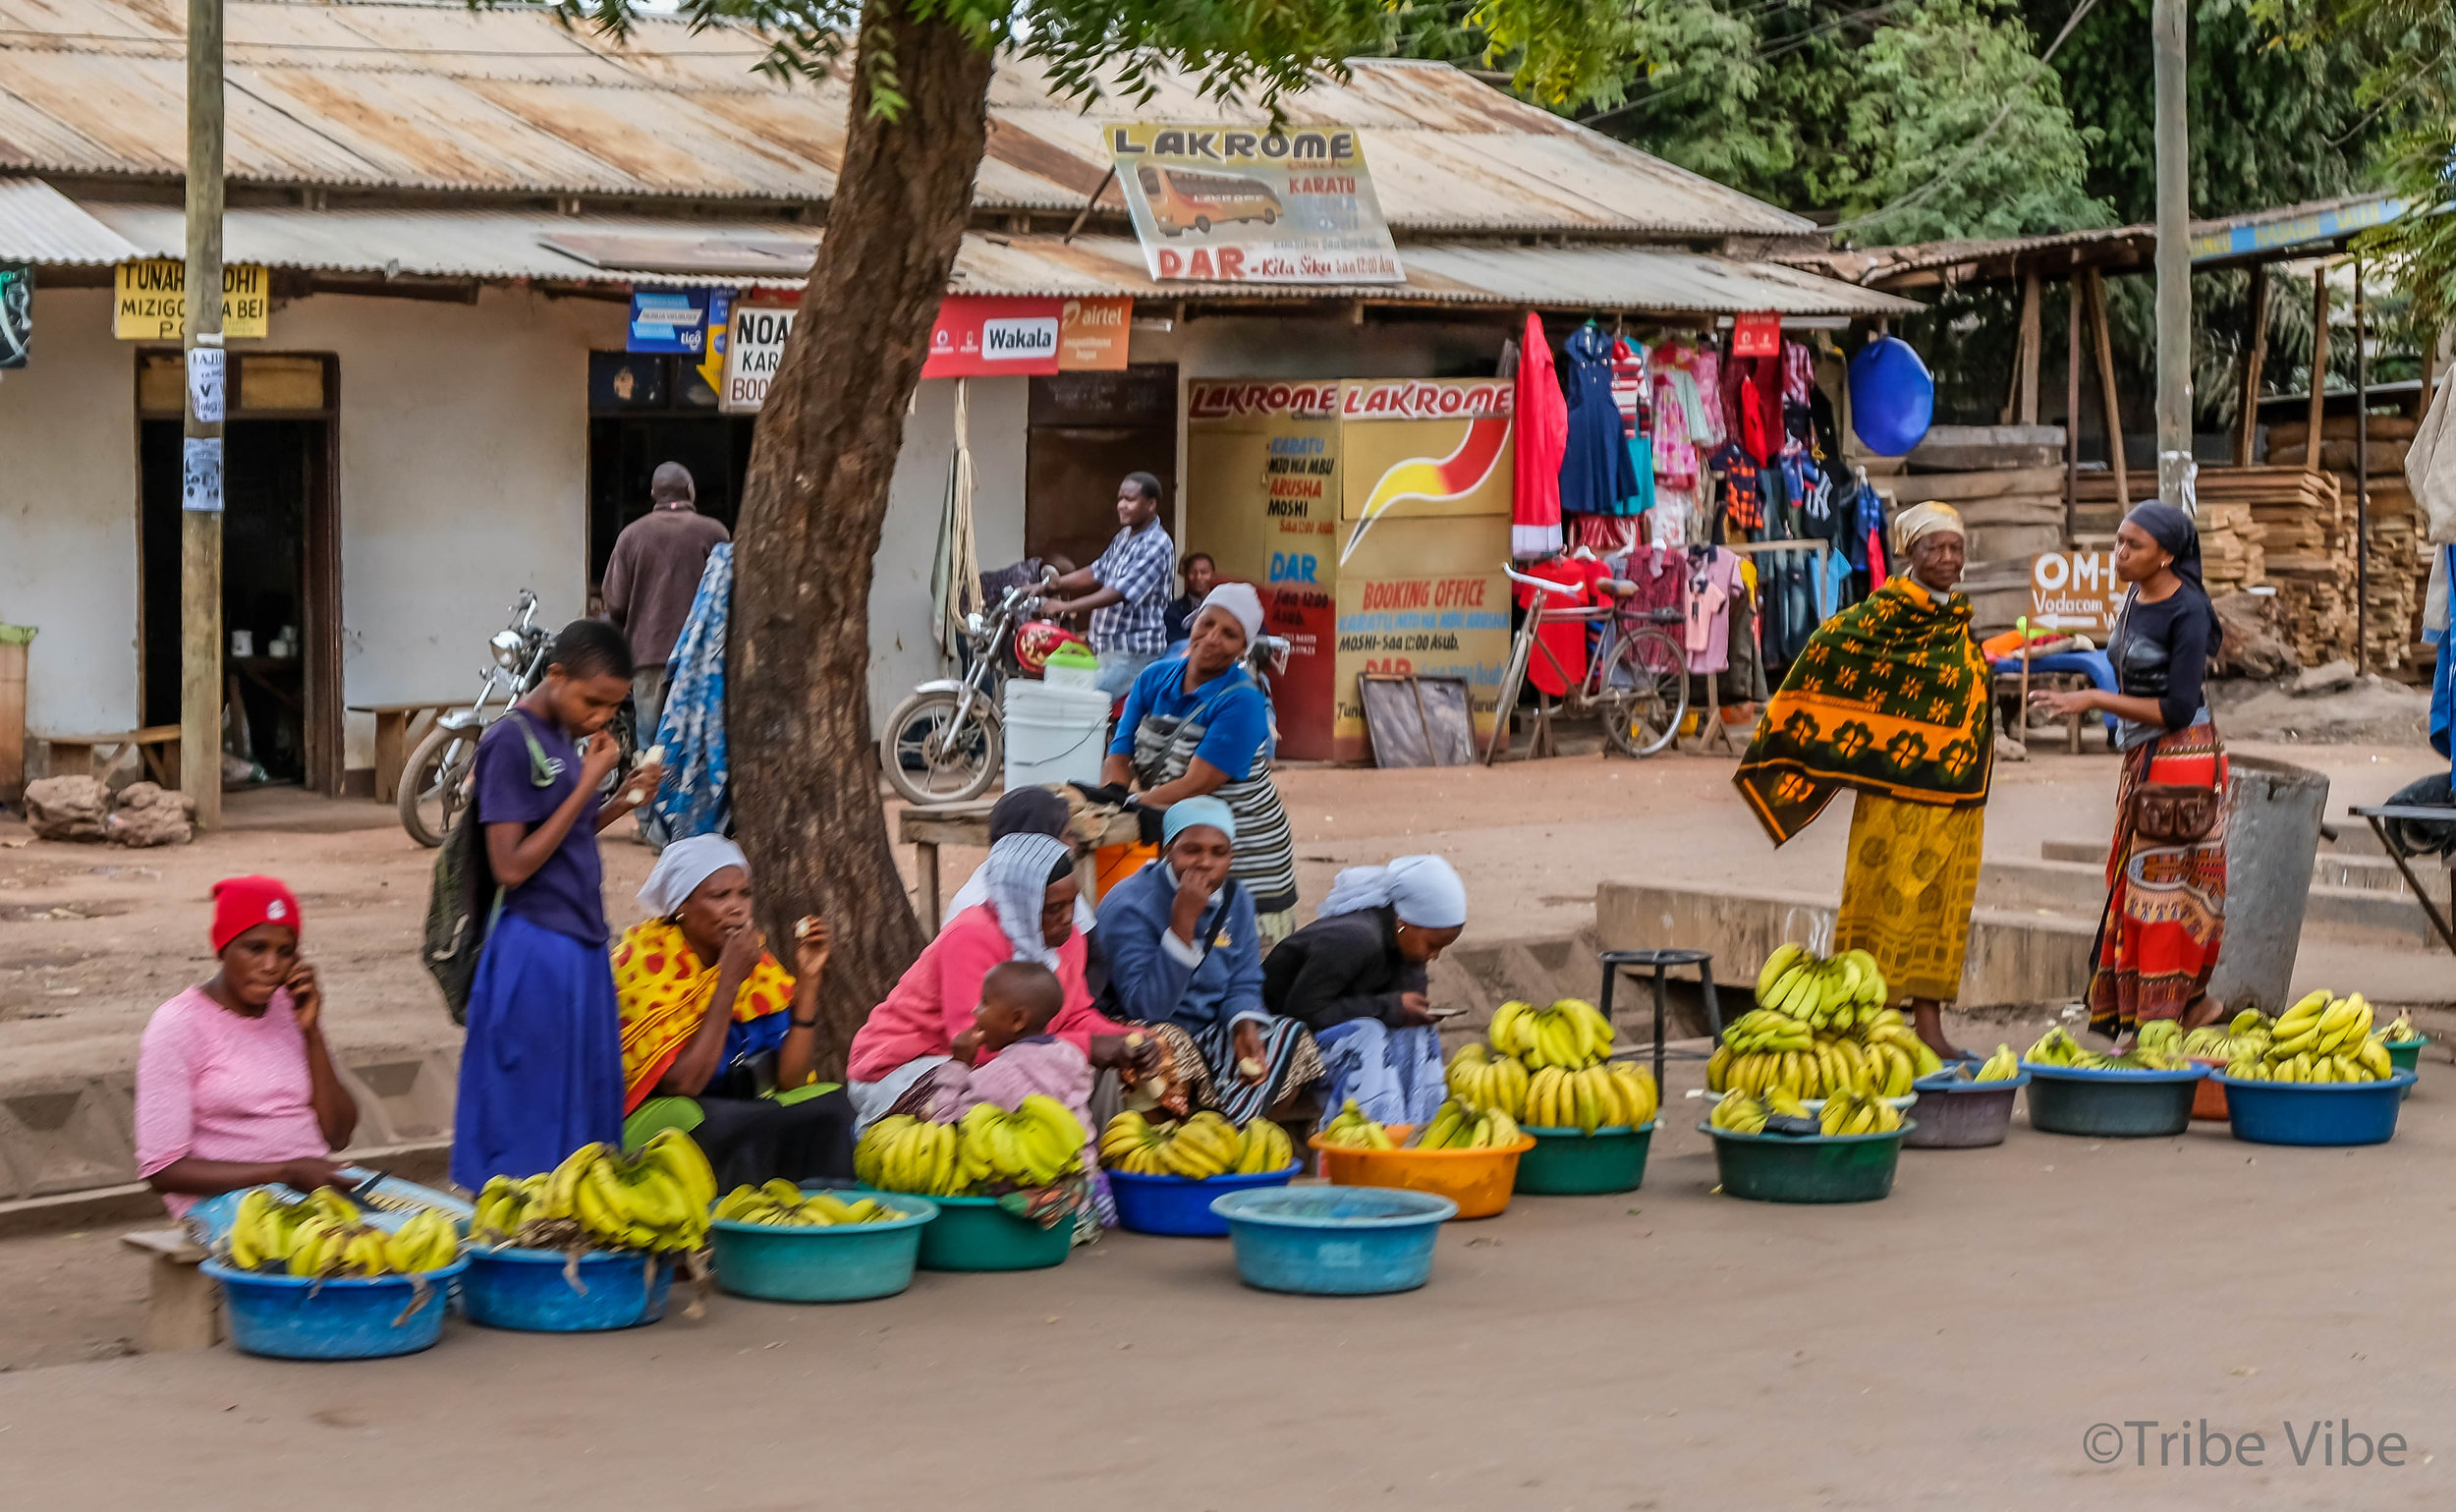 Women selling bannanas in Karatu.